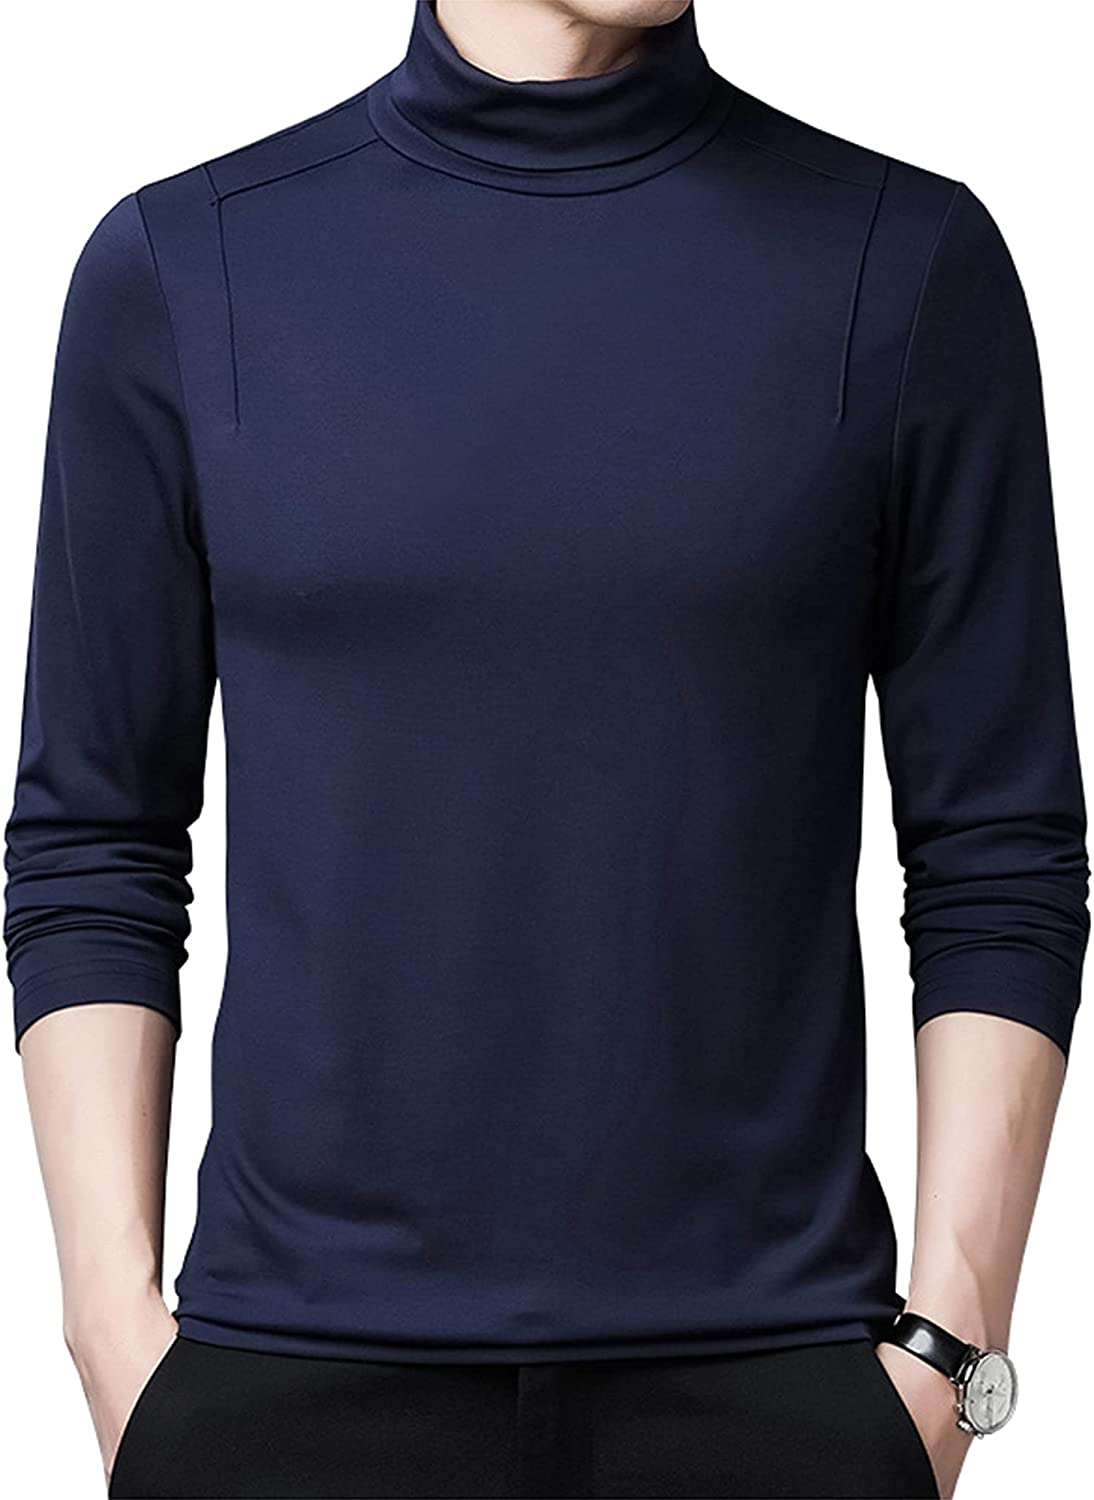 LZJDS Mens Thermal Baselayer Top - Modal Cotton Sweater Roll Neck Jumper Breathable Quick Drying & Fitted Sleeves - for Everyday Use,Blue,175